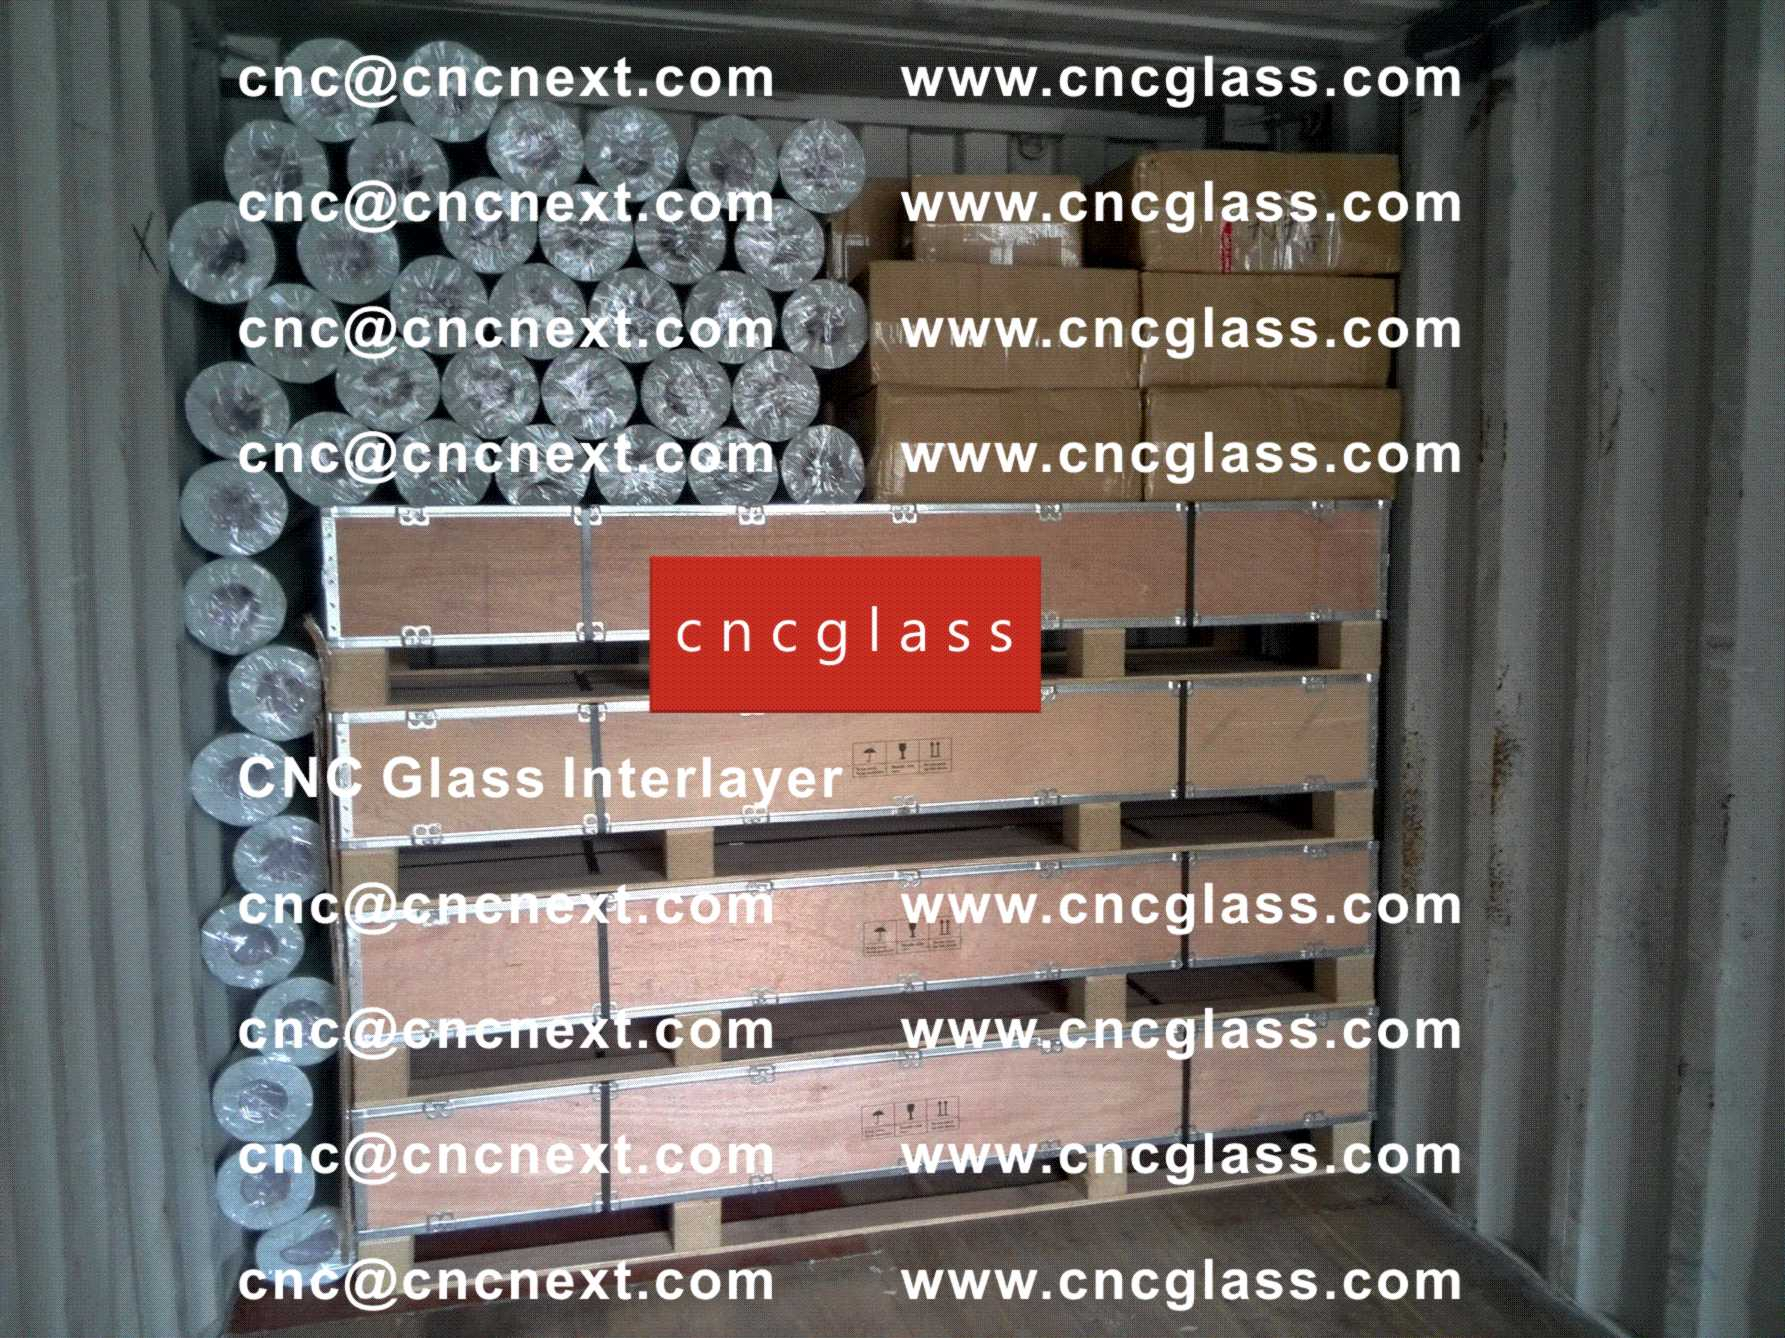 001 Safety Laminated Glass Interlayer EVA Film Loading Container